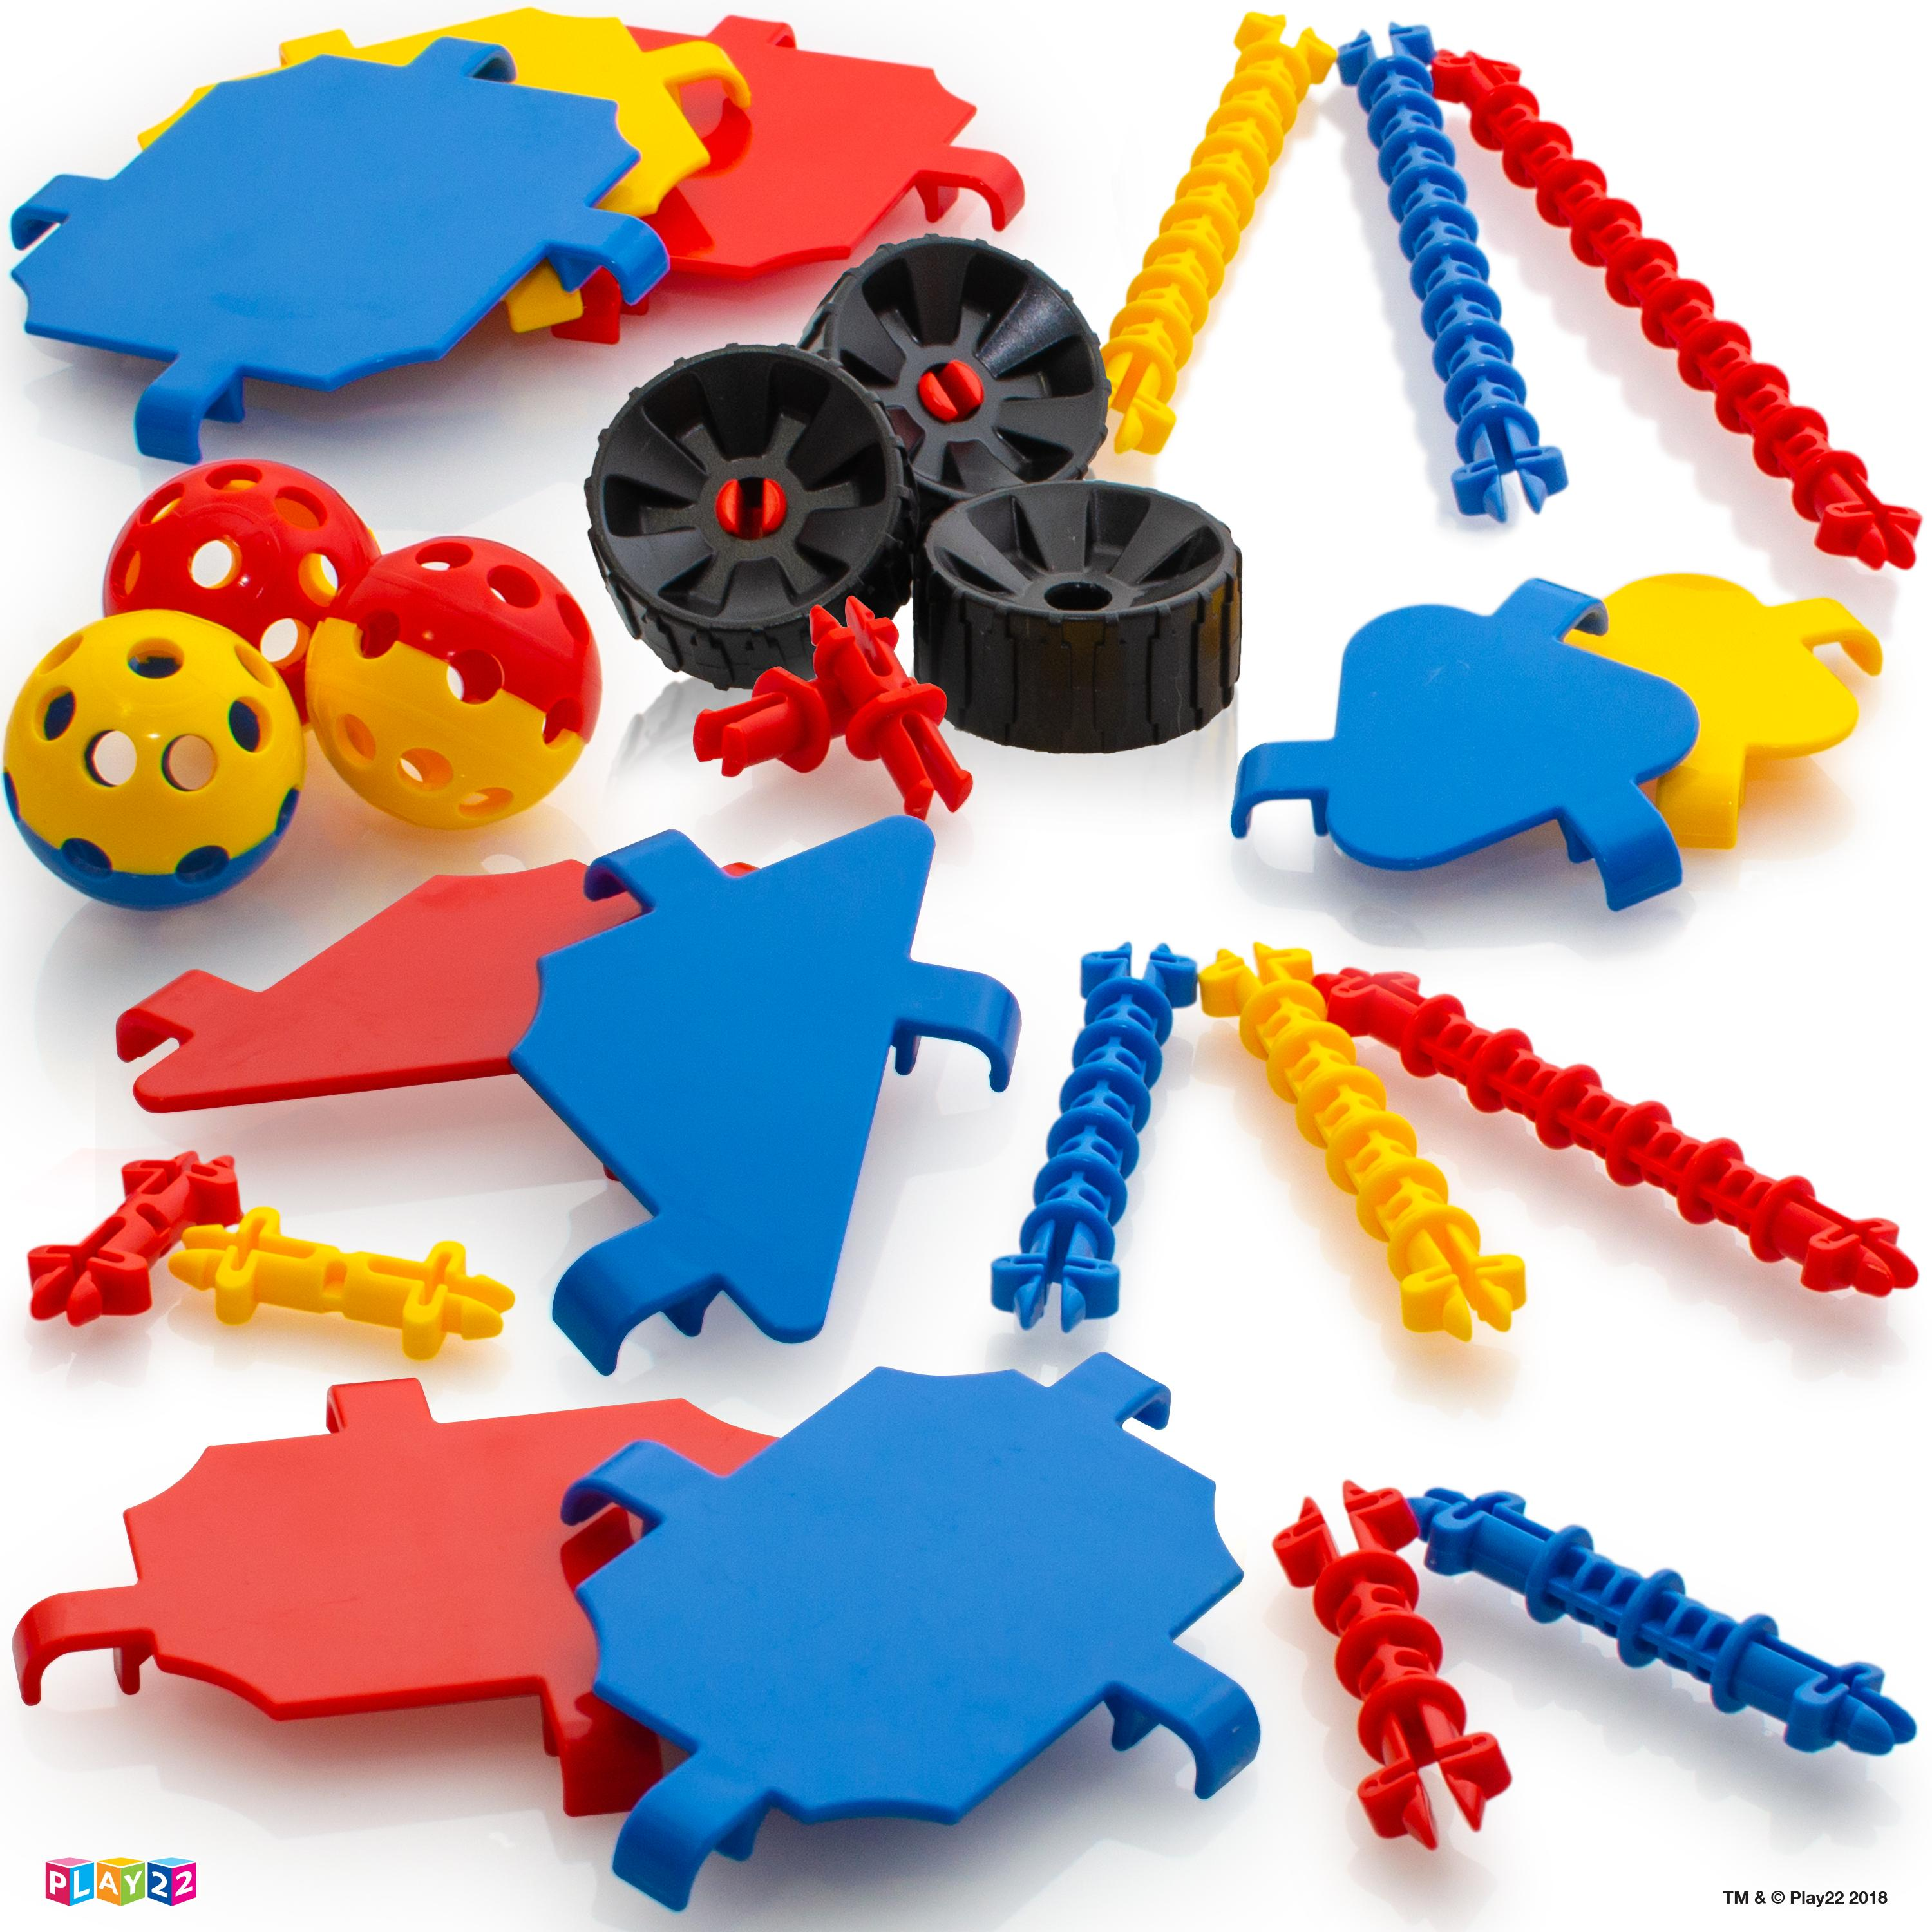 Amazon.com: Play22 Building Toys For Kids 165 Set - STEM ...